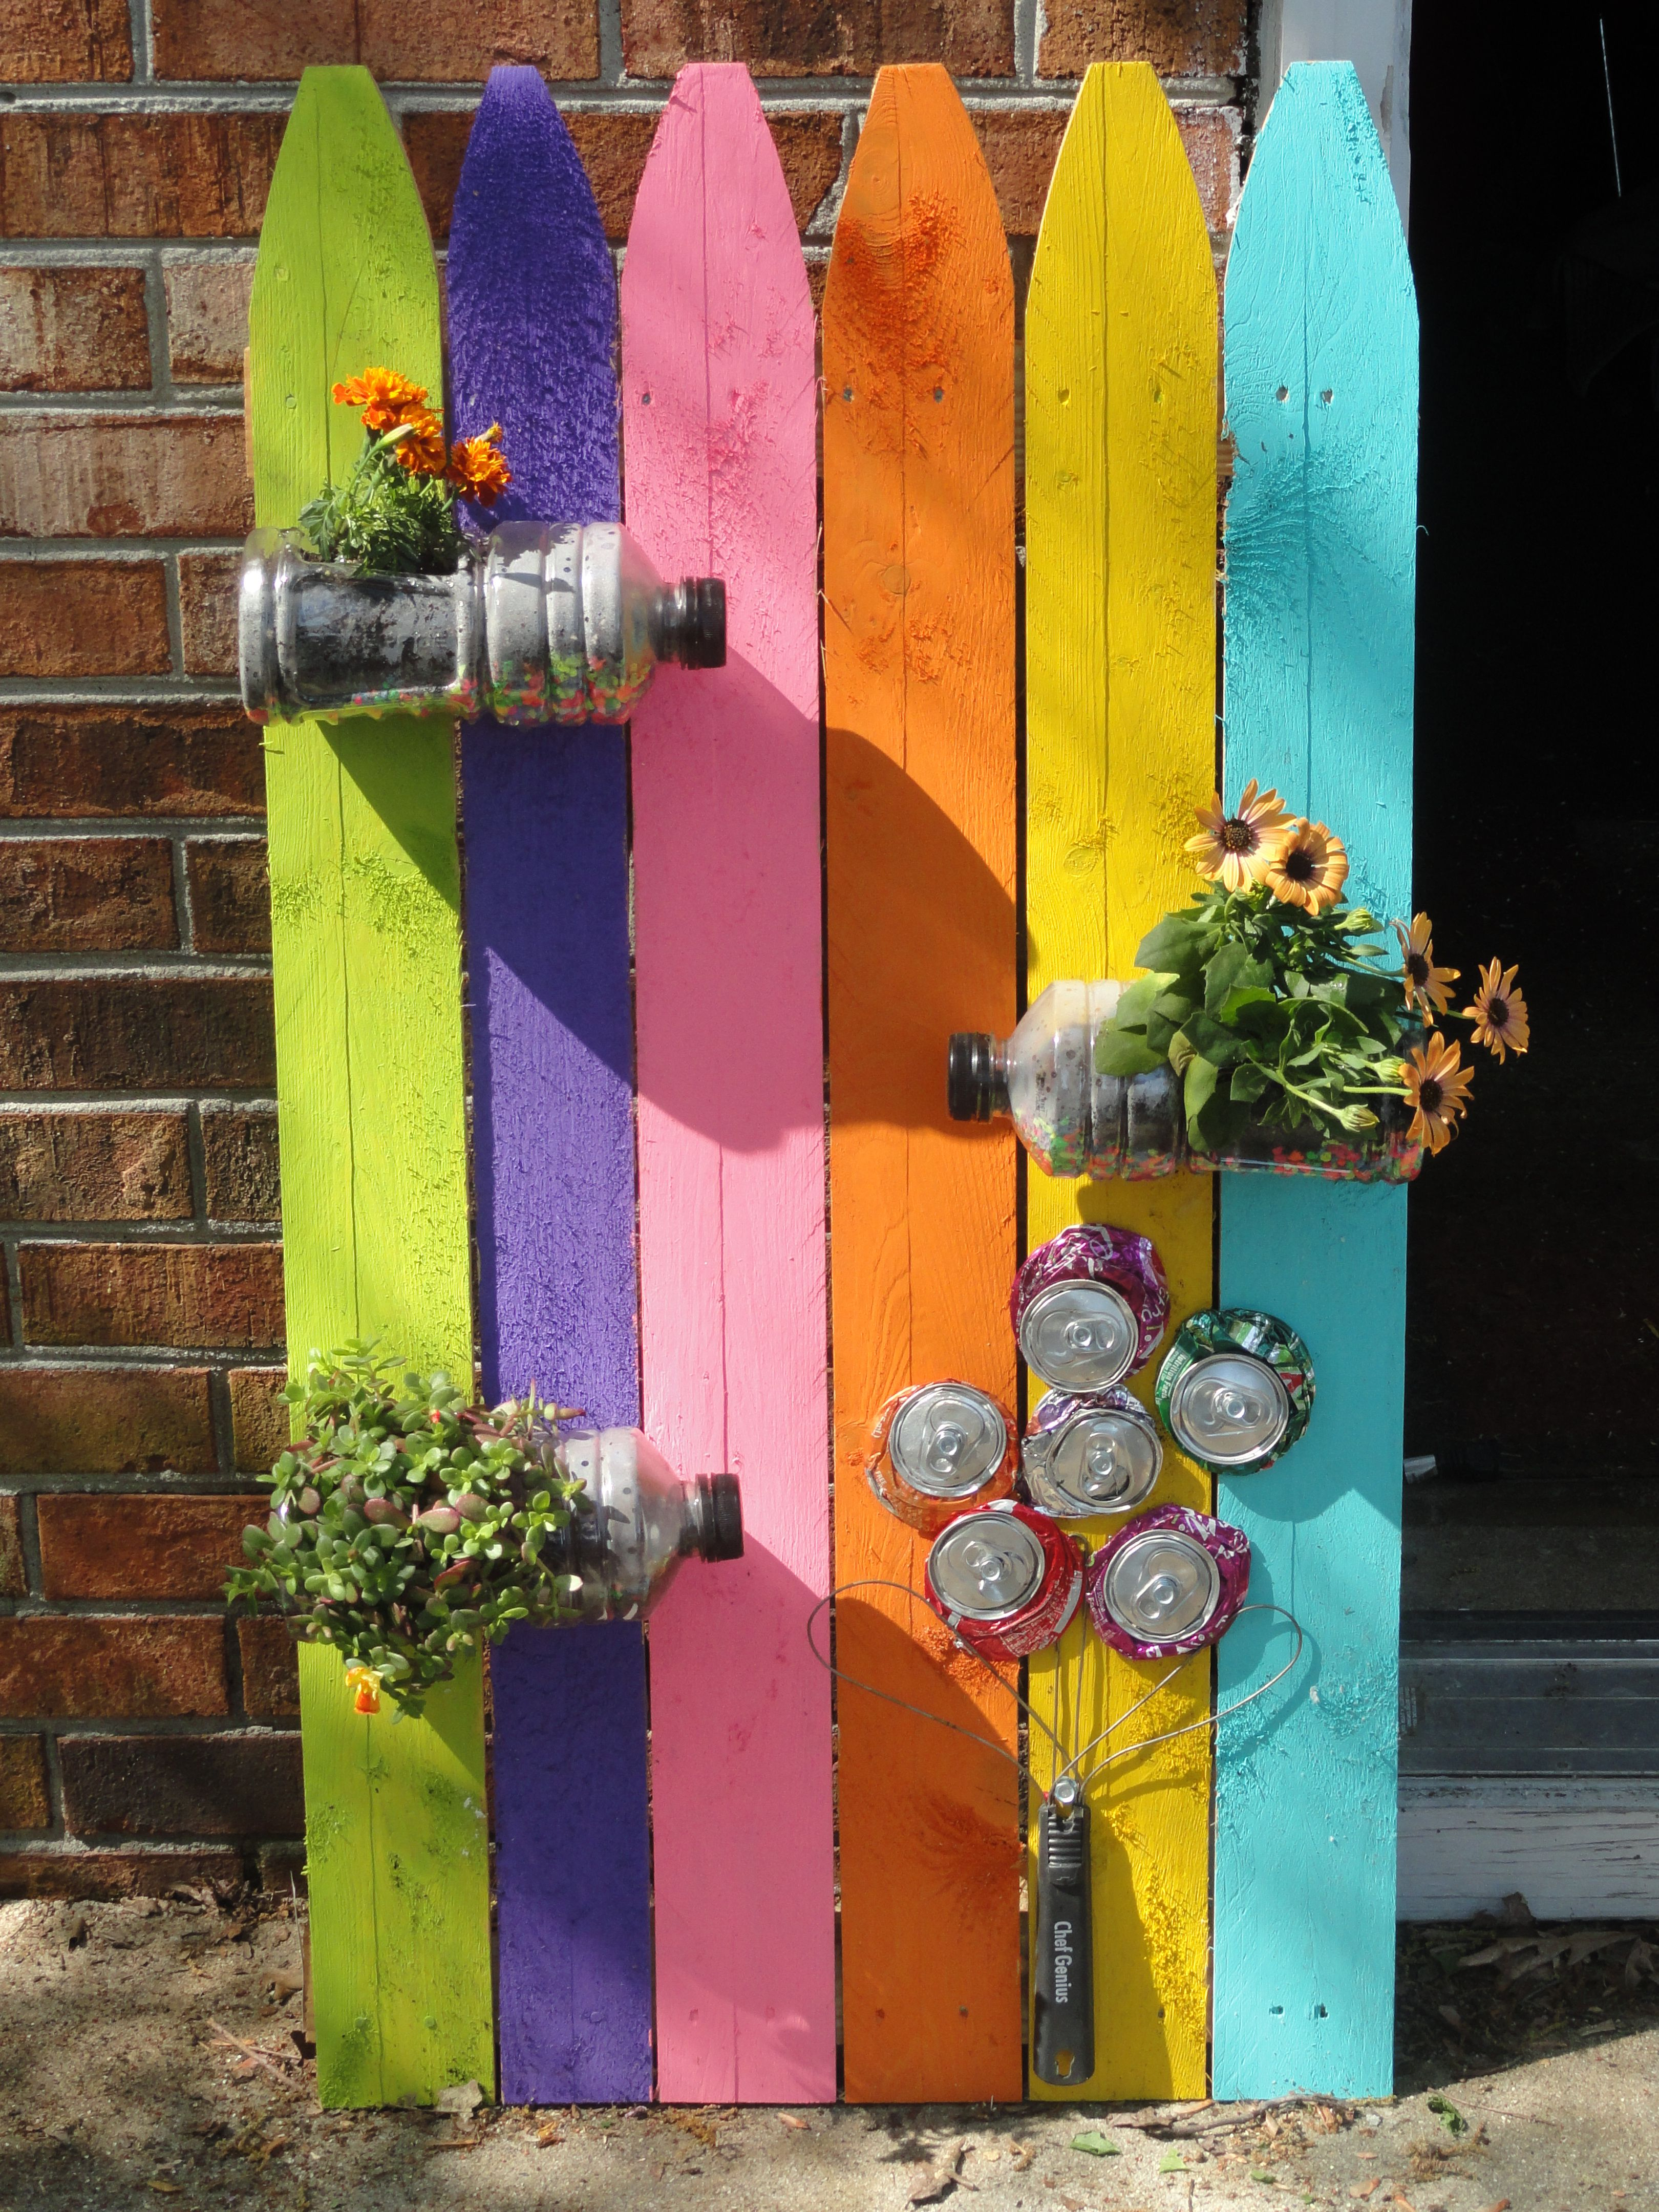 This Is A Project I Made For Garden Recycle Art Contestmade From Old Fencing Powerade Bottles Cans Kitchen Wisk